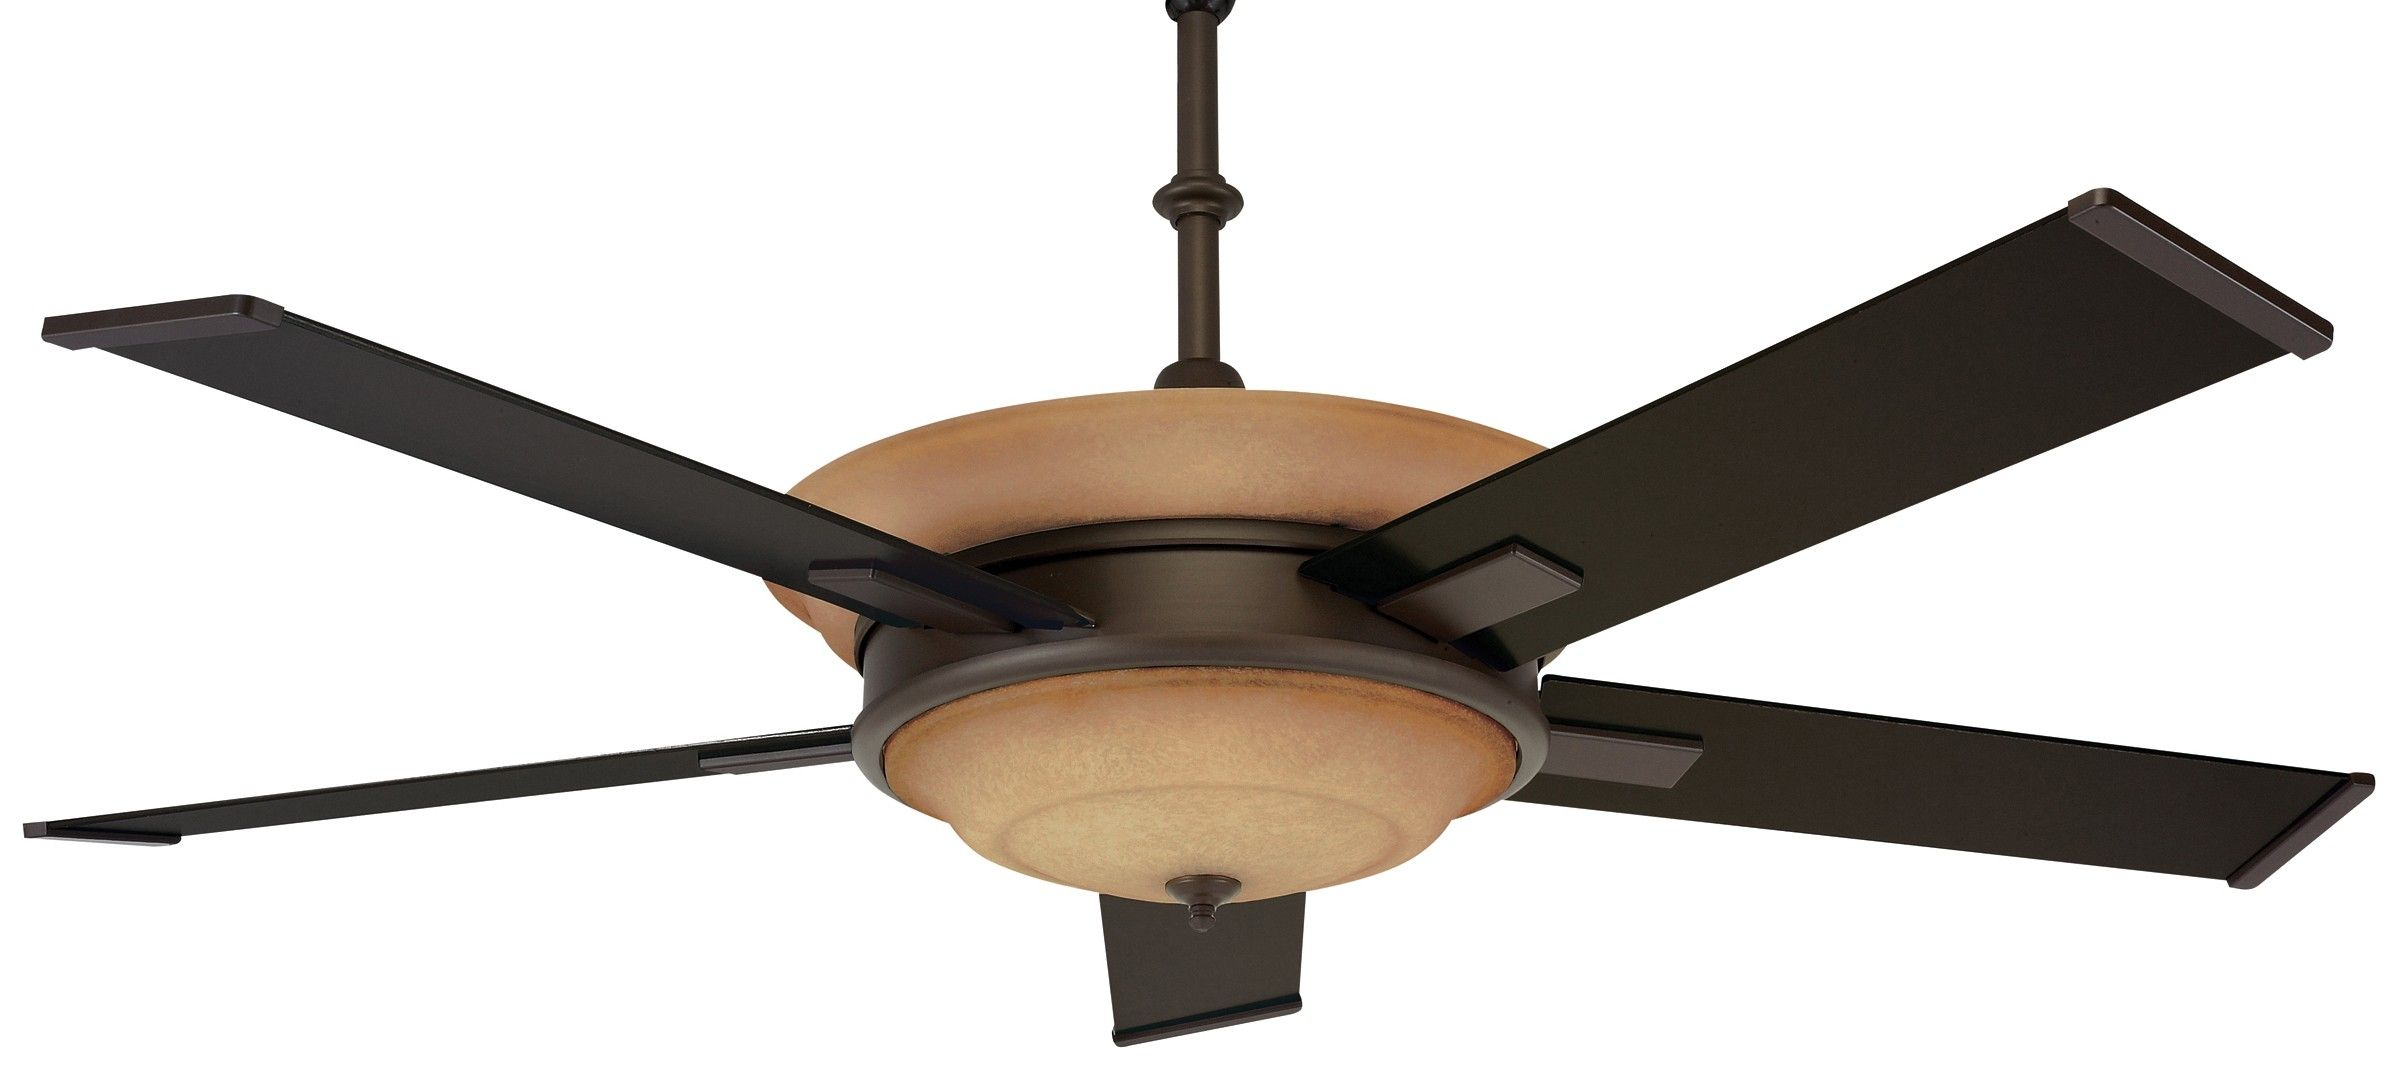 Ceiling Fan With Uplight And Downlight Ceiling Fan Downlights Ceiling Fan Bedroom